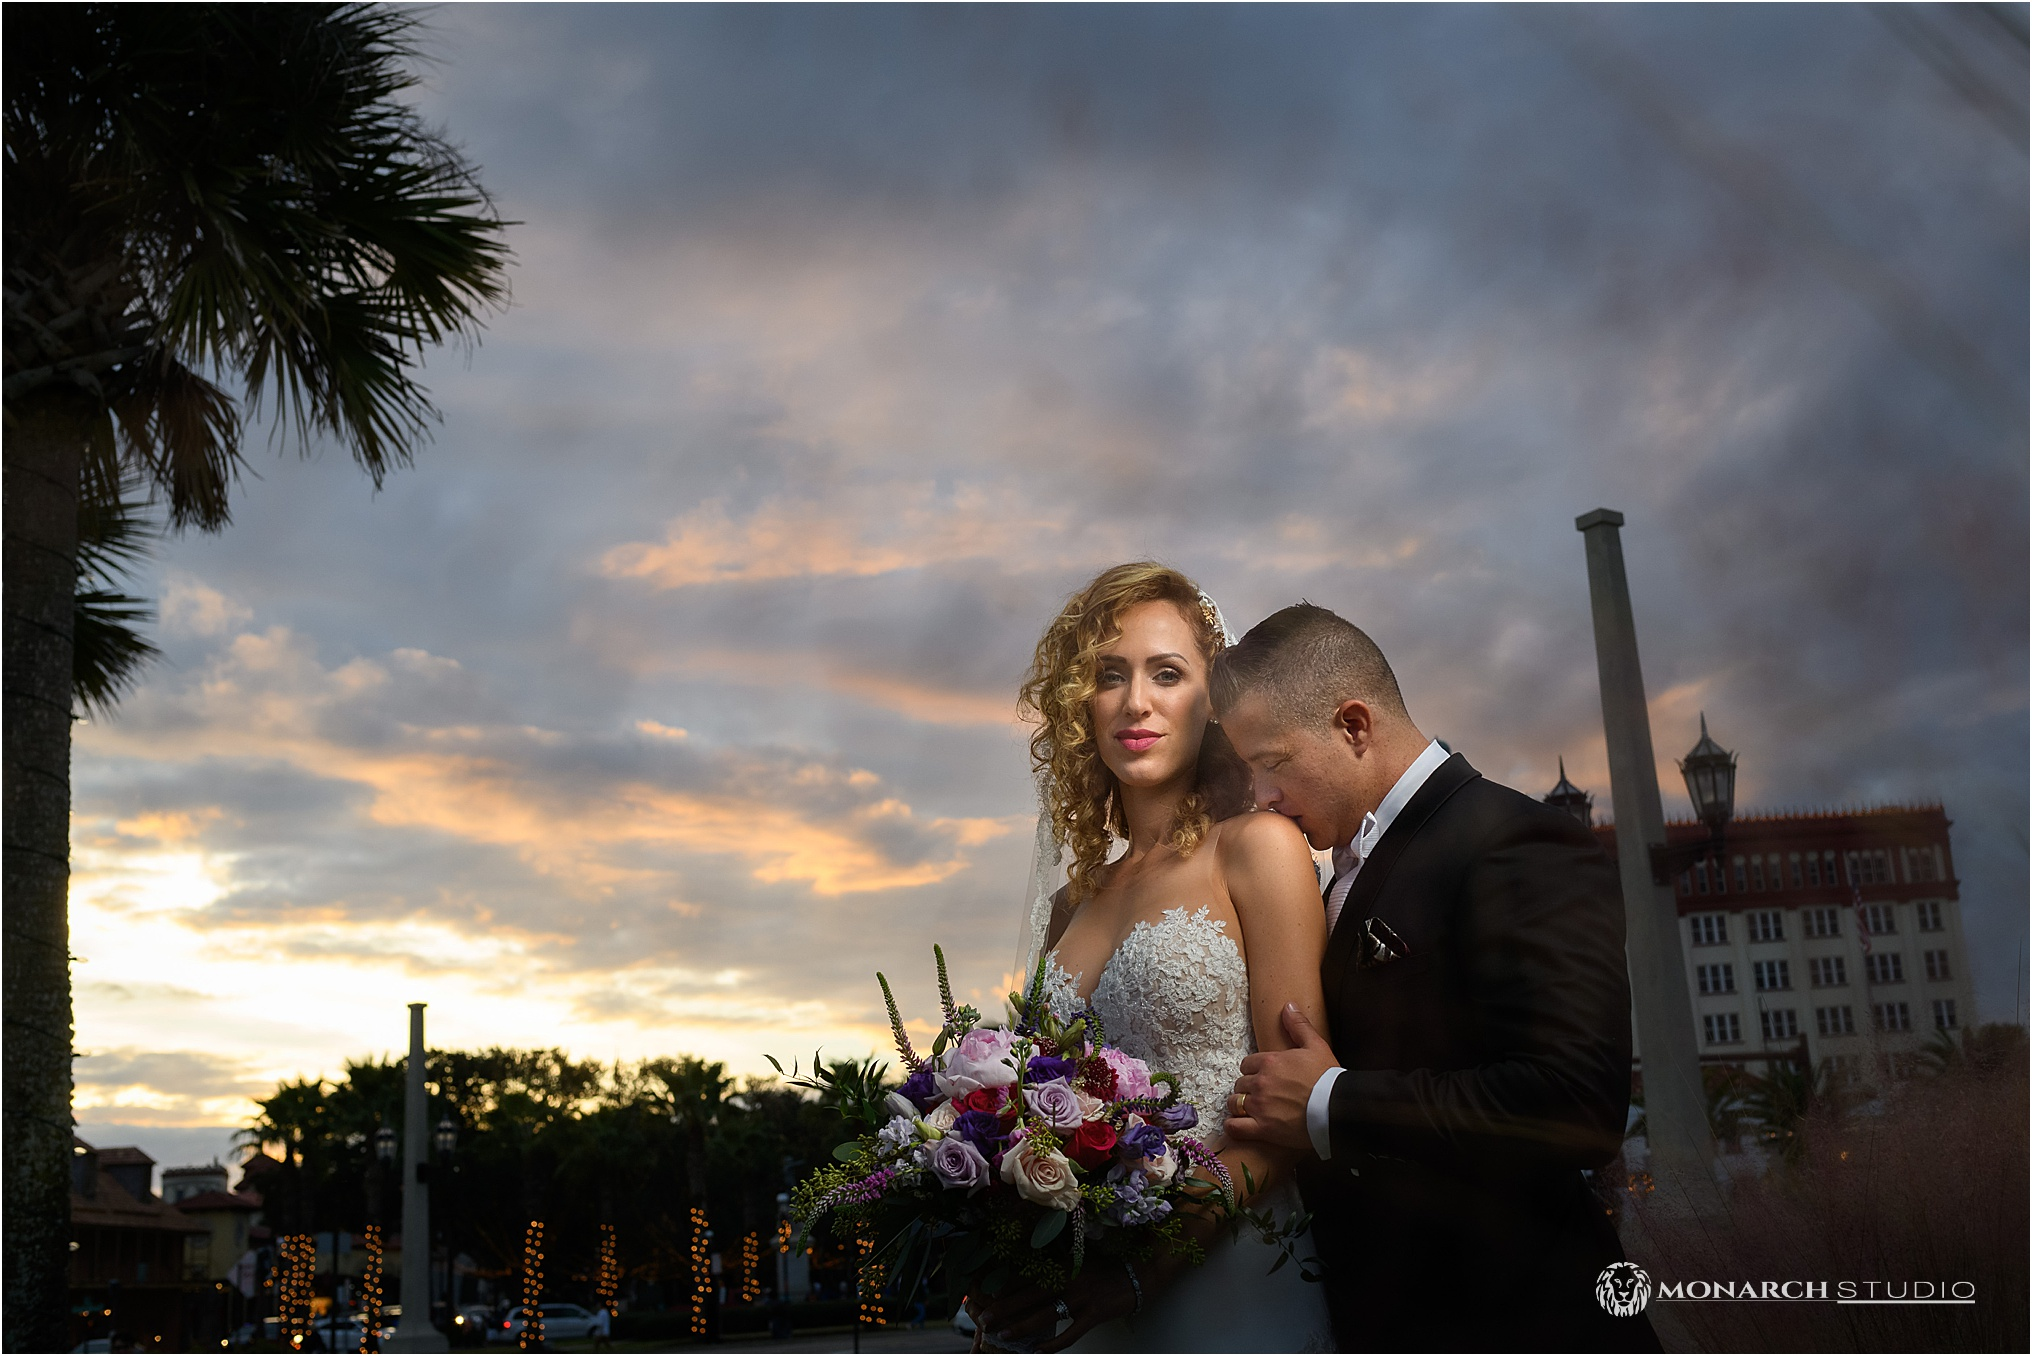 The-Whiteroom-Wedding-Photography-Saint-Augustine-Florida (140).jpg